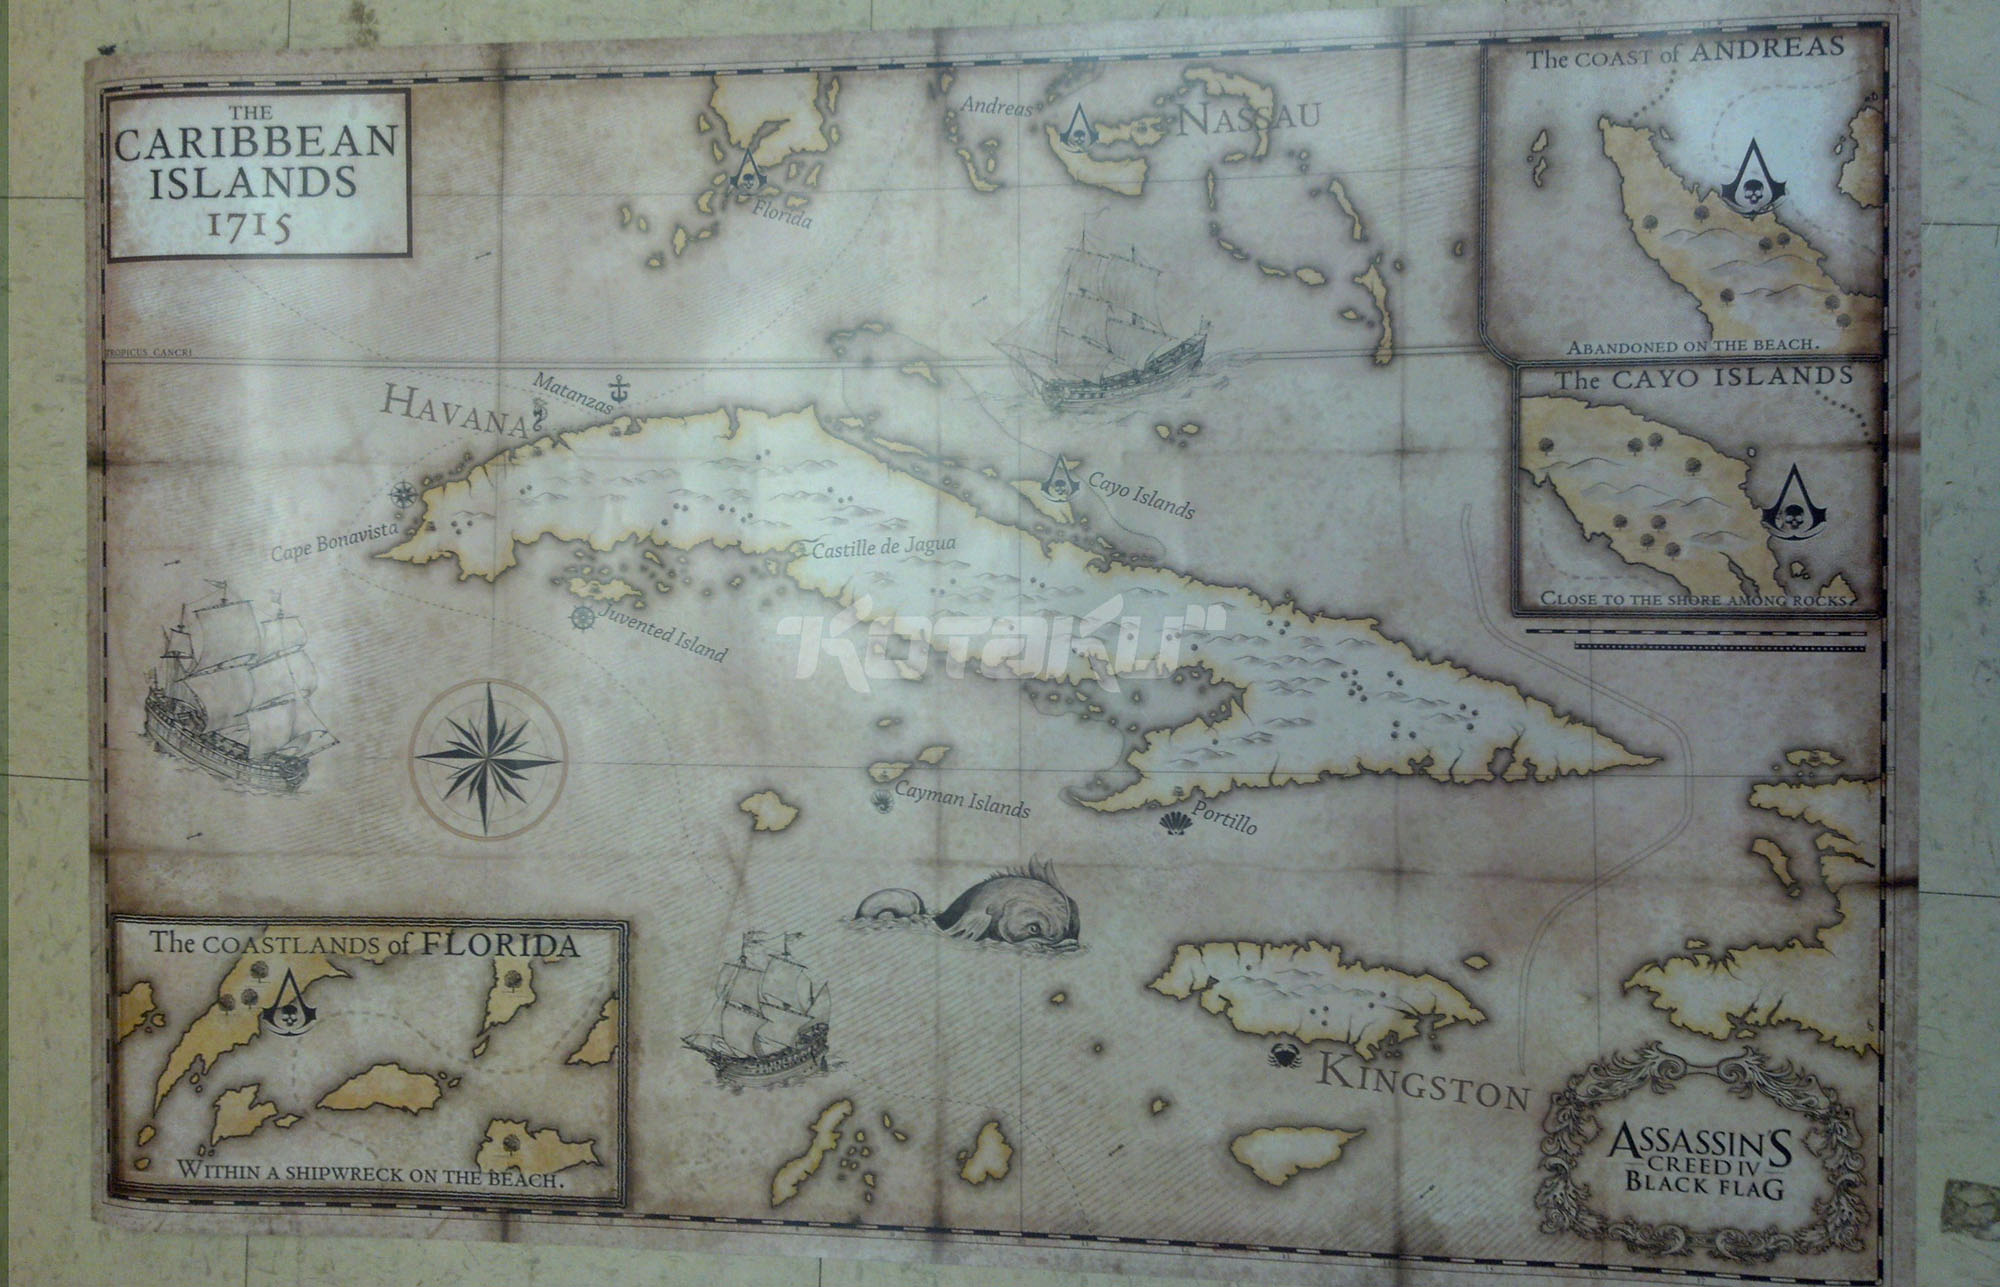 assassins creed black flag map